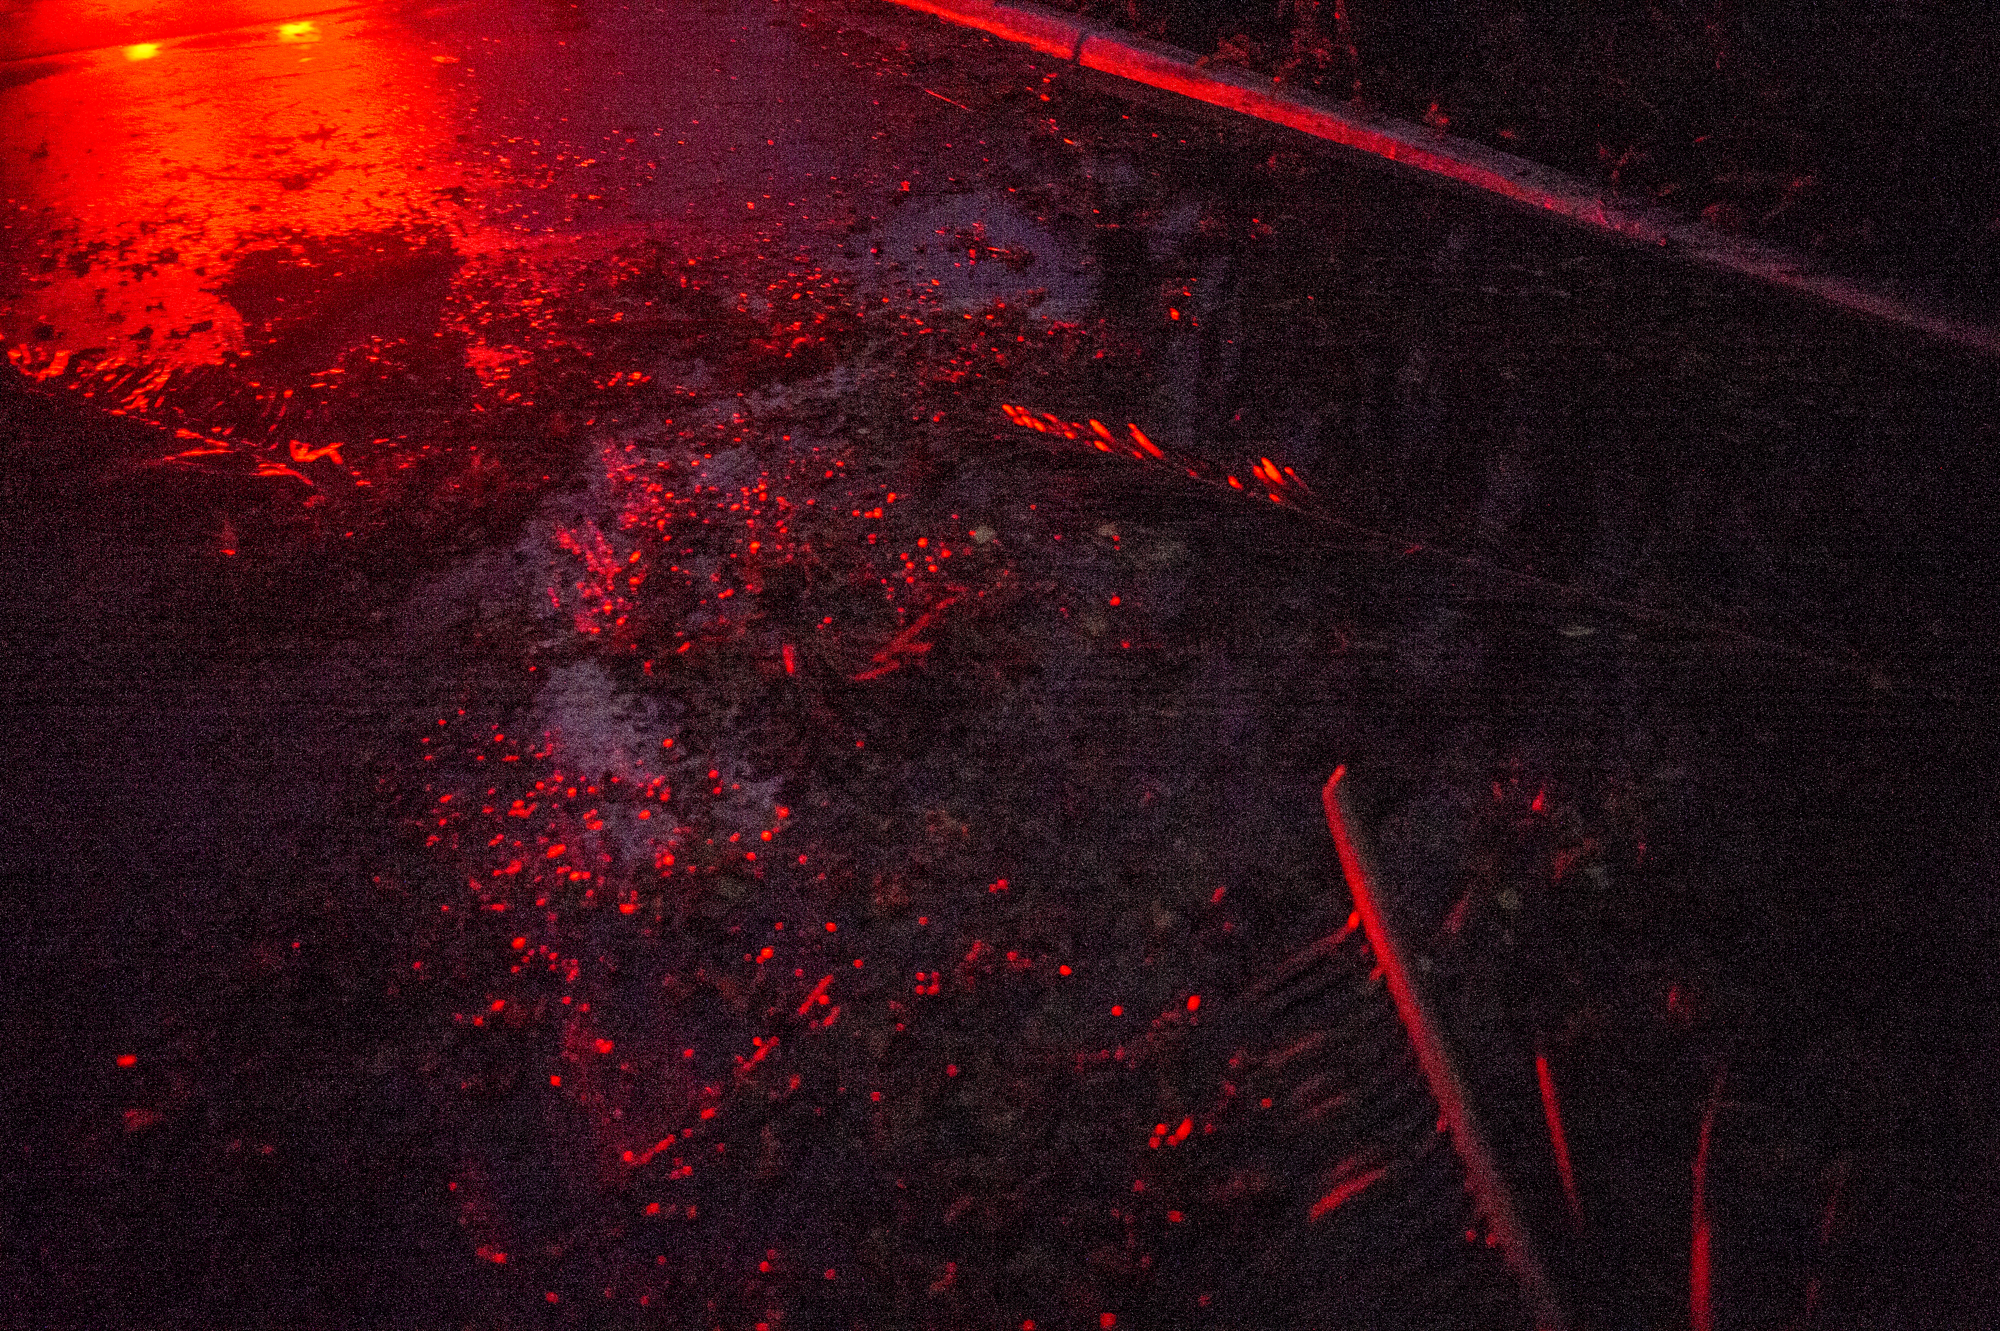 Tail lights reflect in the debris from the storm.